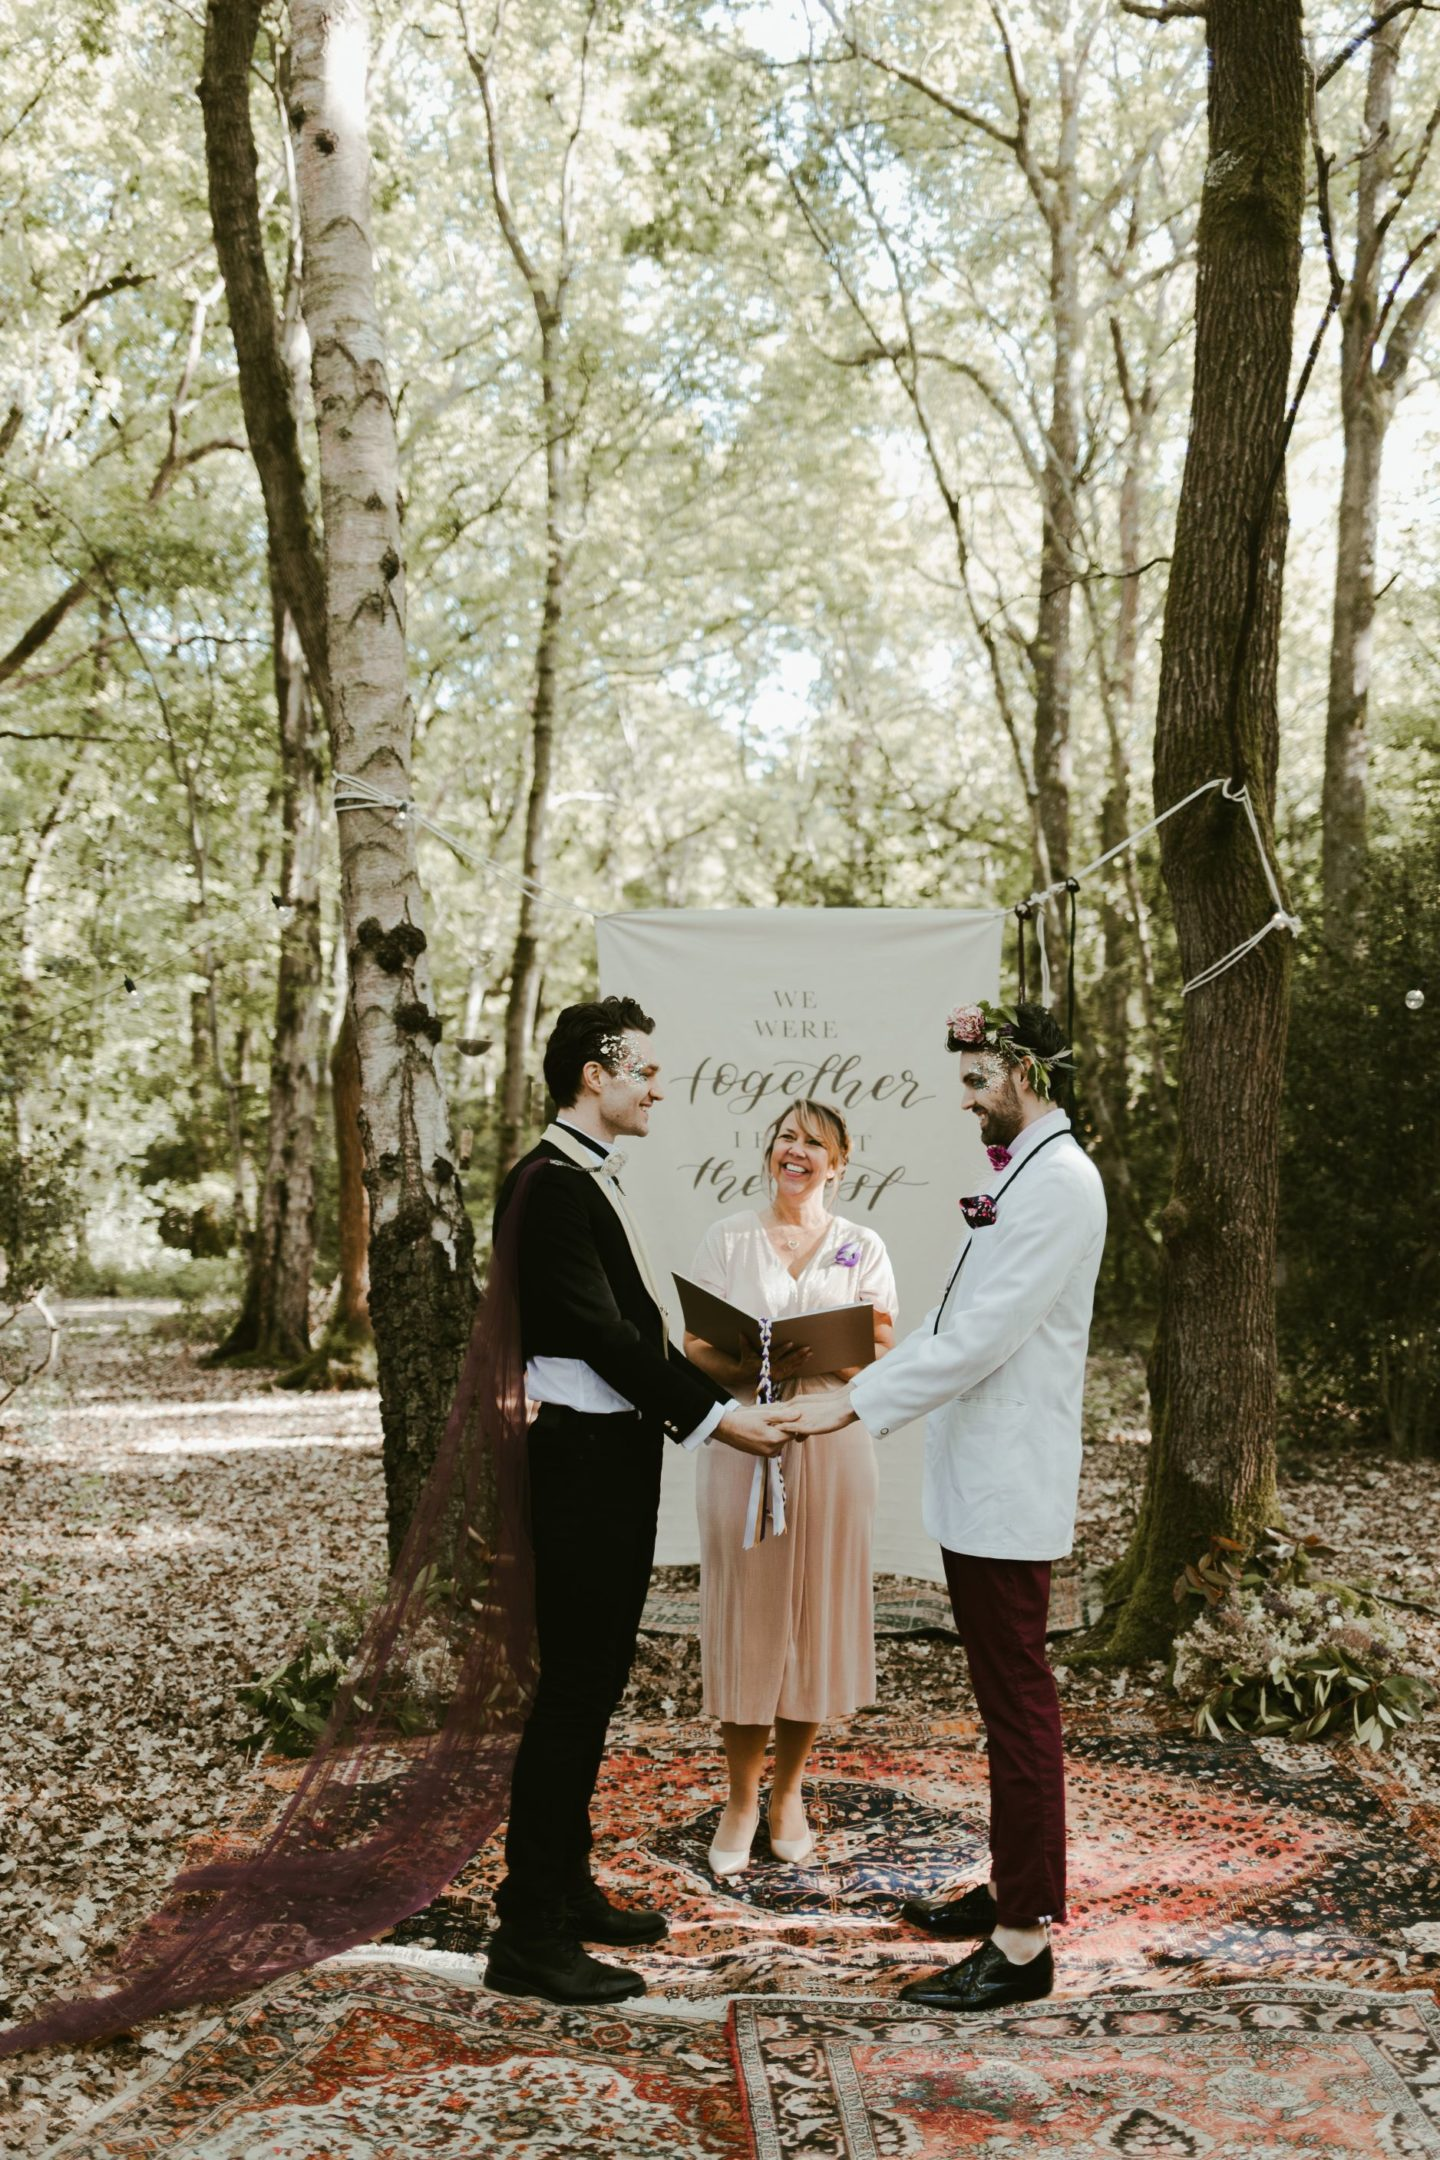 Boho Chic Festival Picnic Wedding With Eclectic Styling